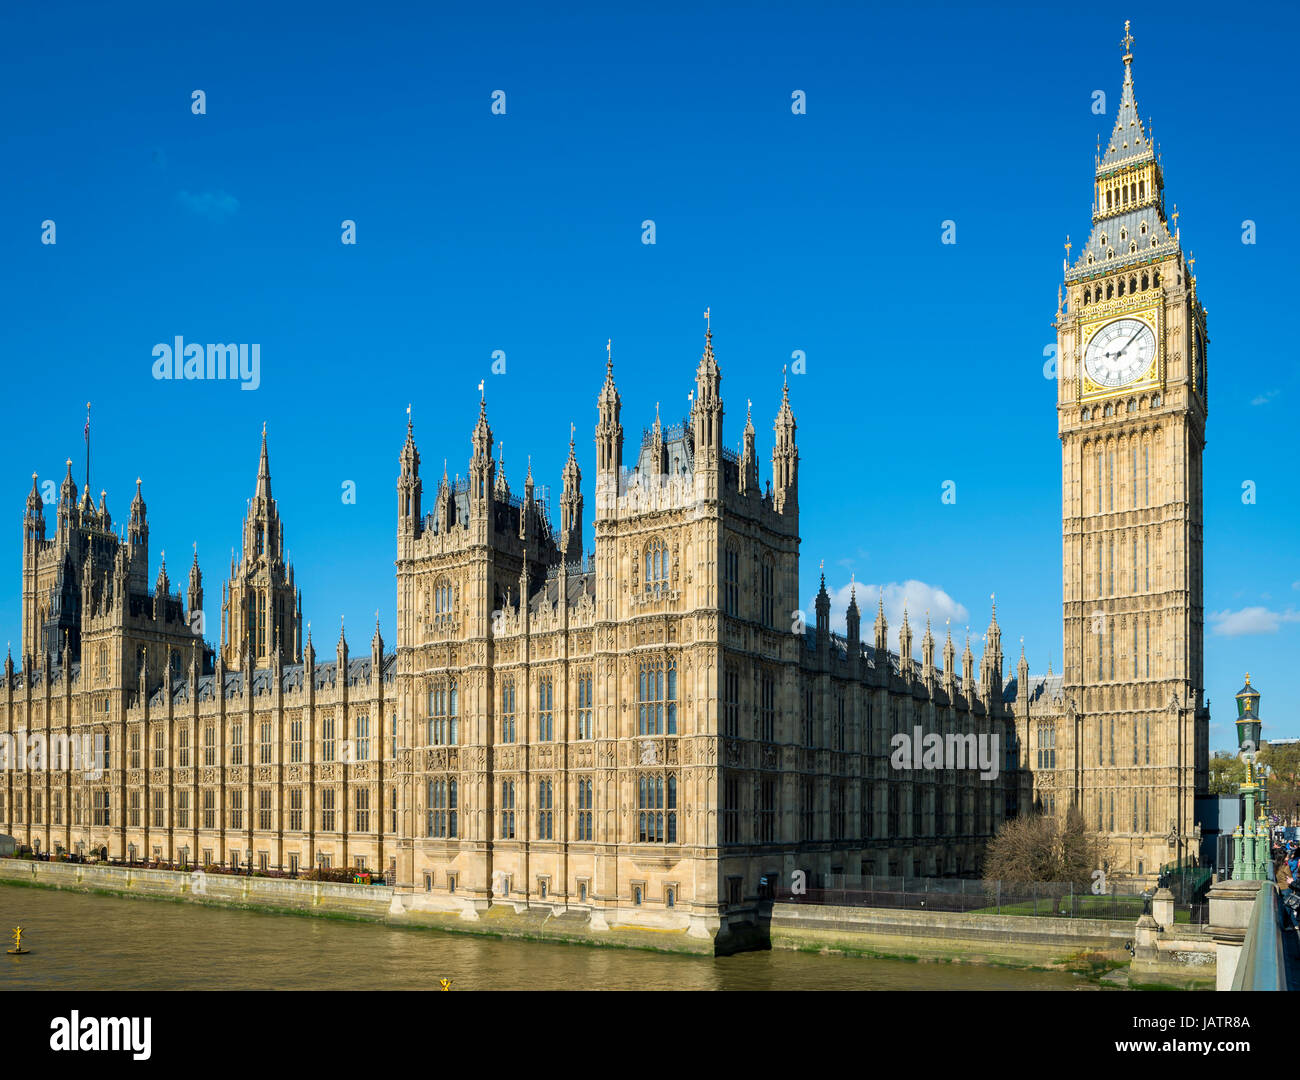 Bright blue sky morning view of Big Ben and the Houses of Parliament at Westminster Palace from the nearby bridge Stock Photo